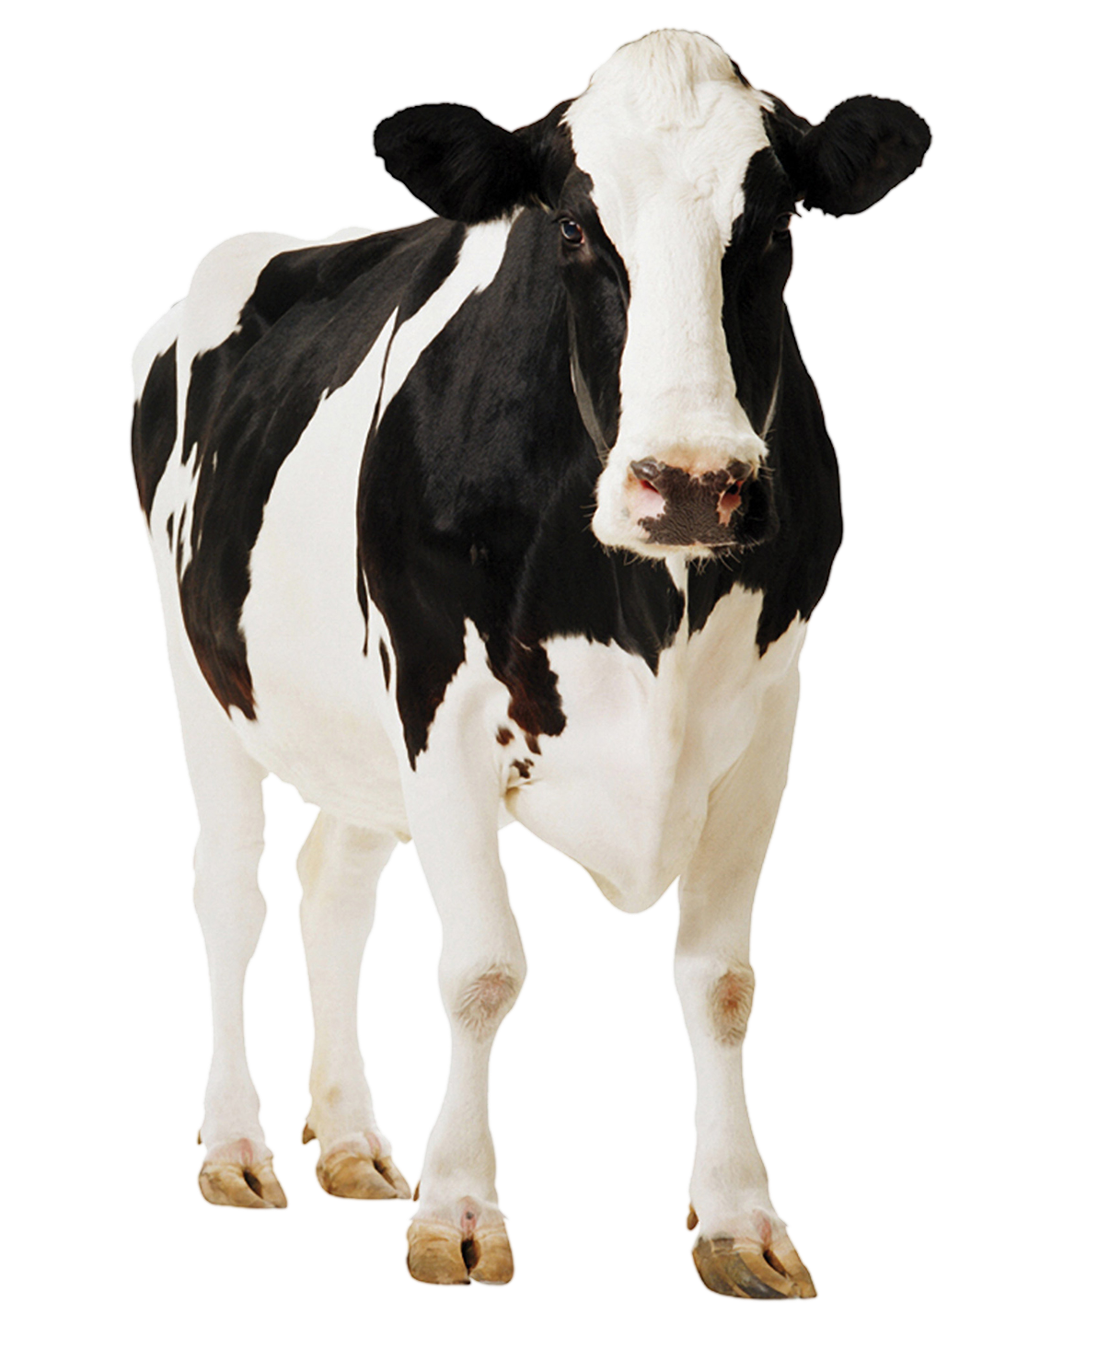 Cow png. Baby hd transparent images